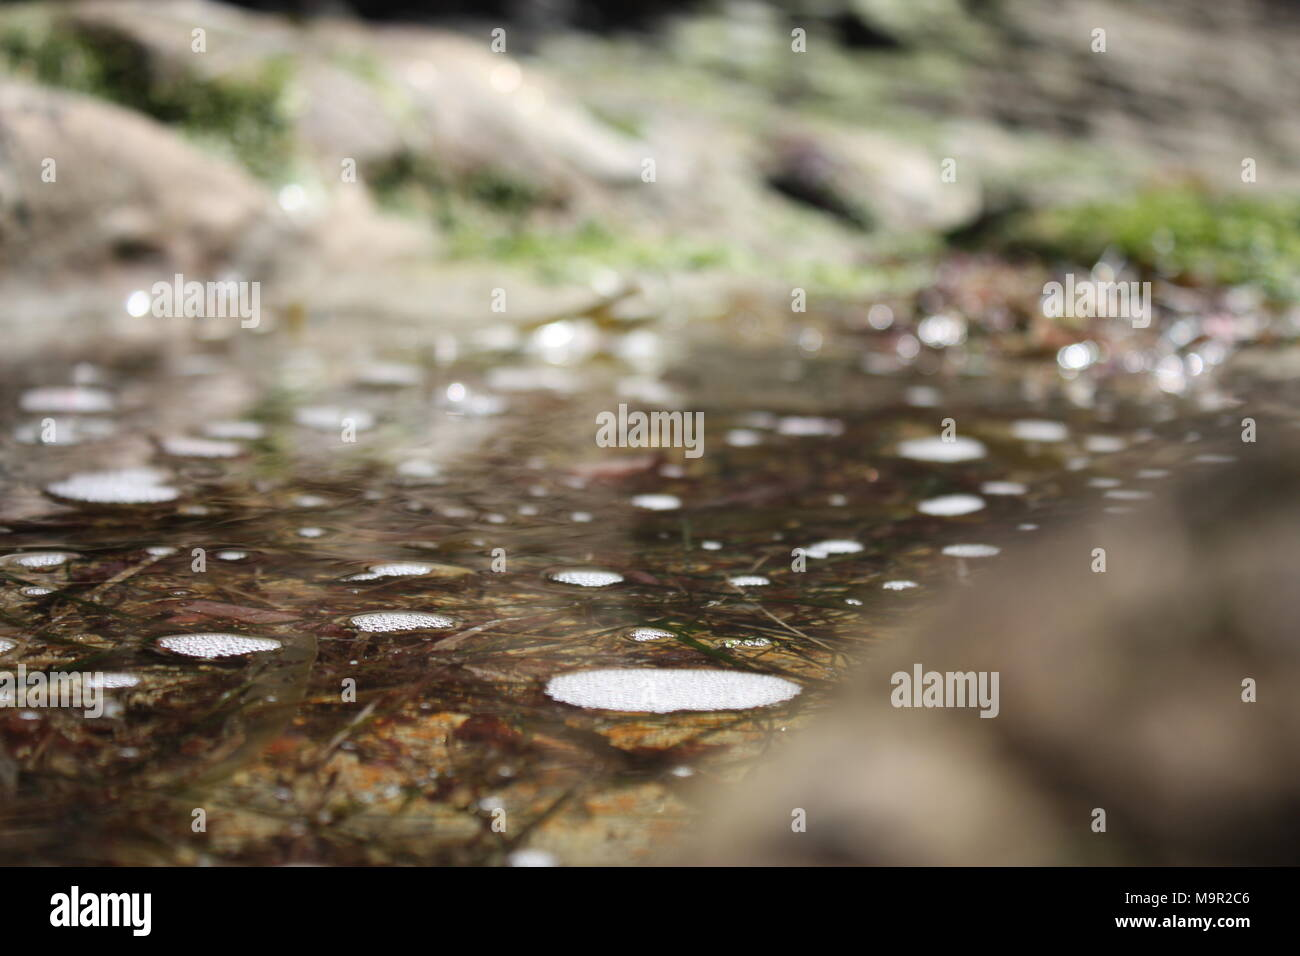 Dirt Water - Stock Image